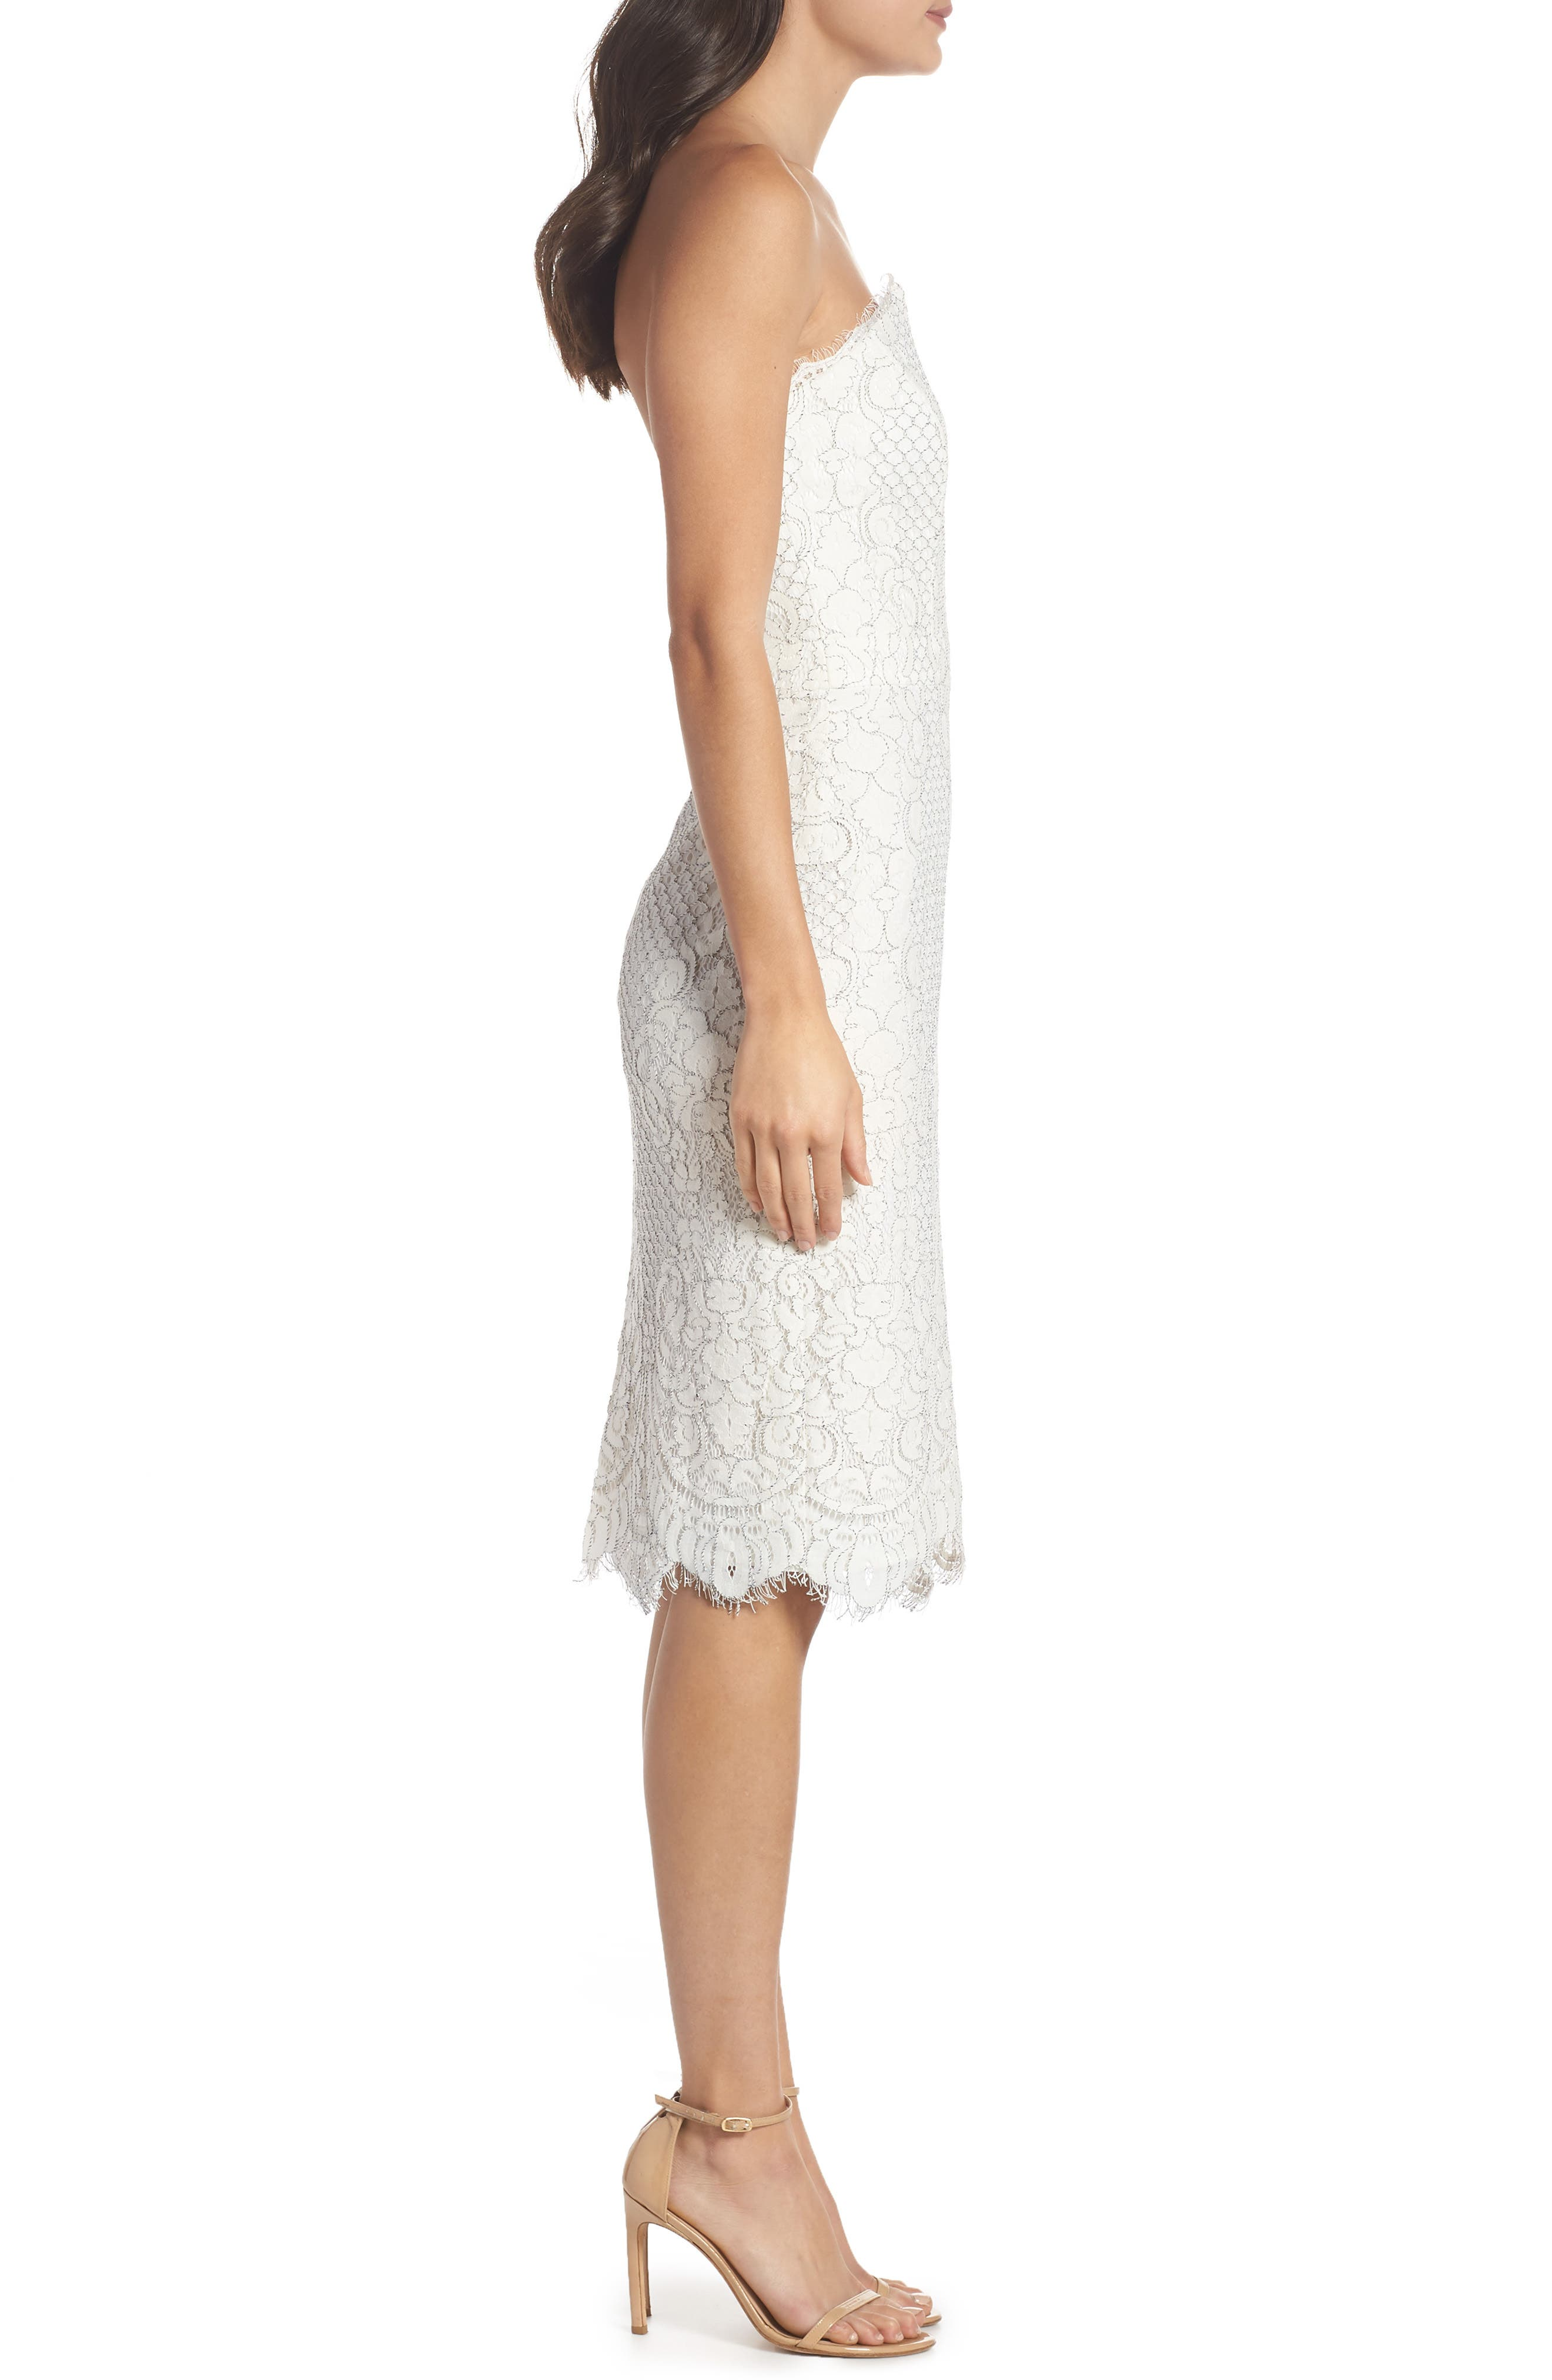 HARLYN,                             Strapless Lace Cocktail Dress,                             Alternate thumbnail 4, color,                             902